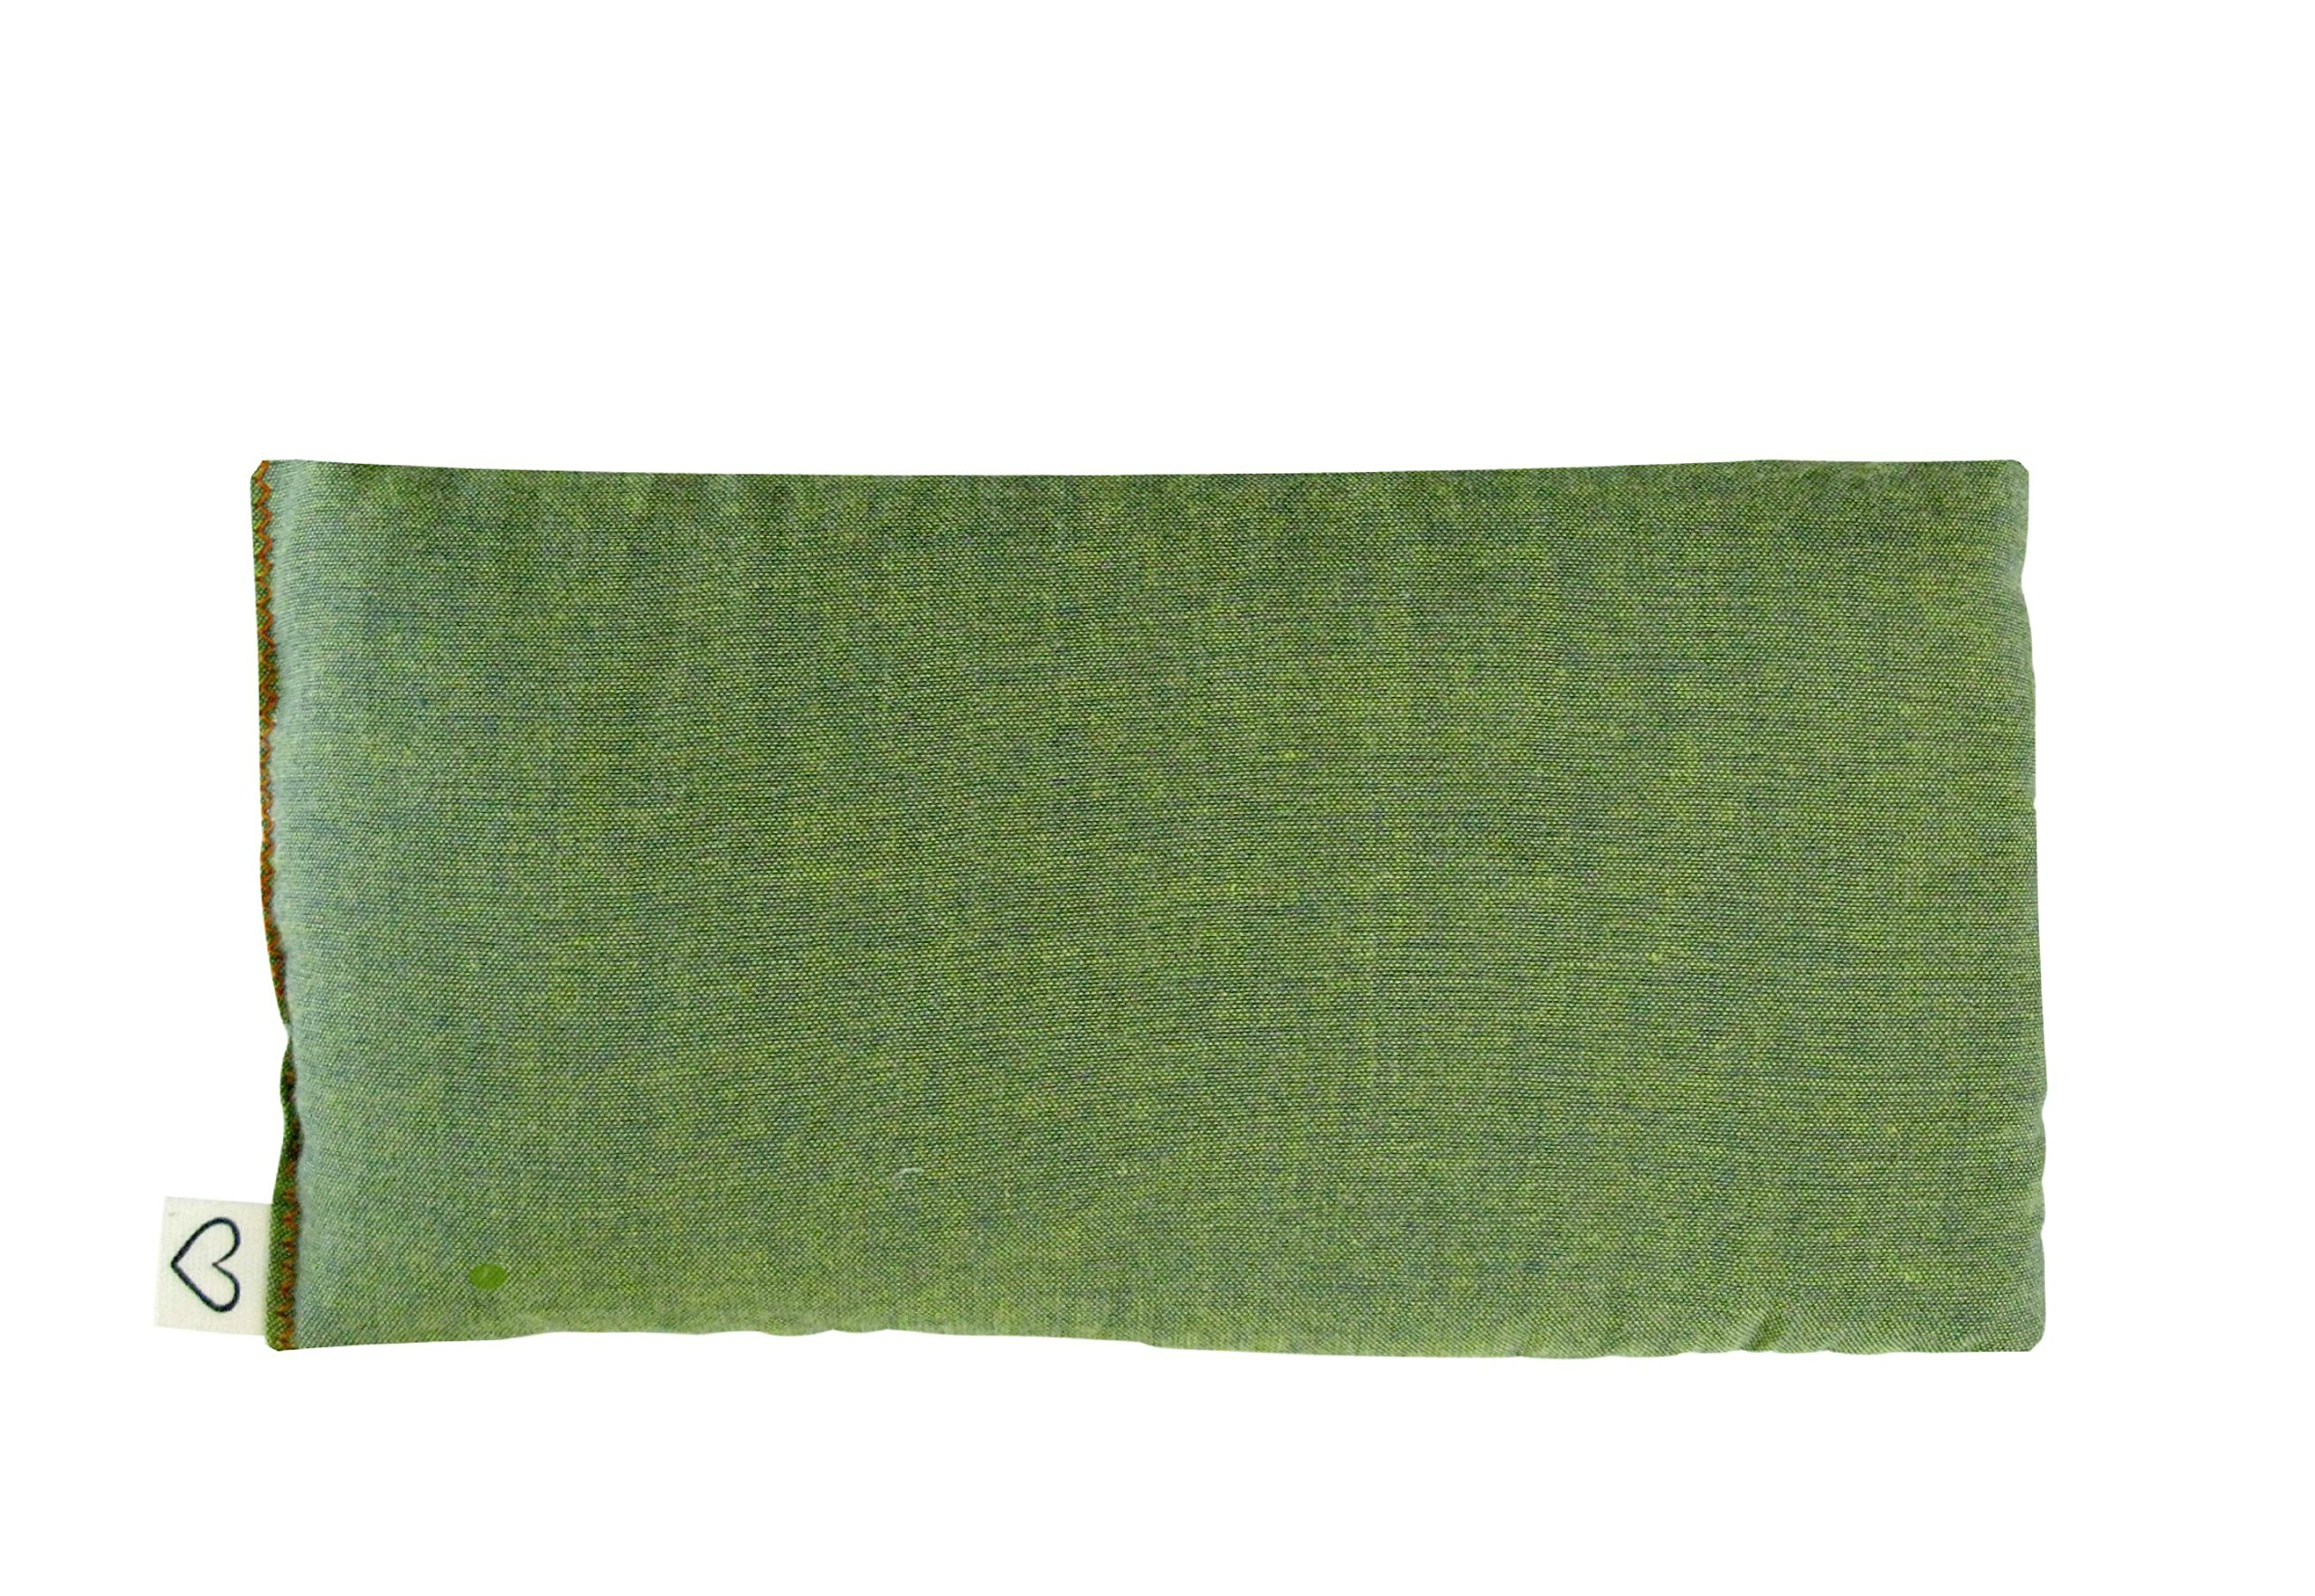 Pack (4) Unscented Organic Flax Seed Eye Pillows - 4 x 8.5 - Soft & Soothing Cotton - soothing relaxing - green by Peacegoods